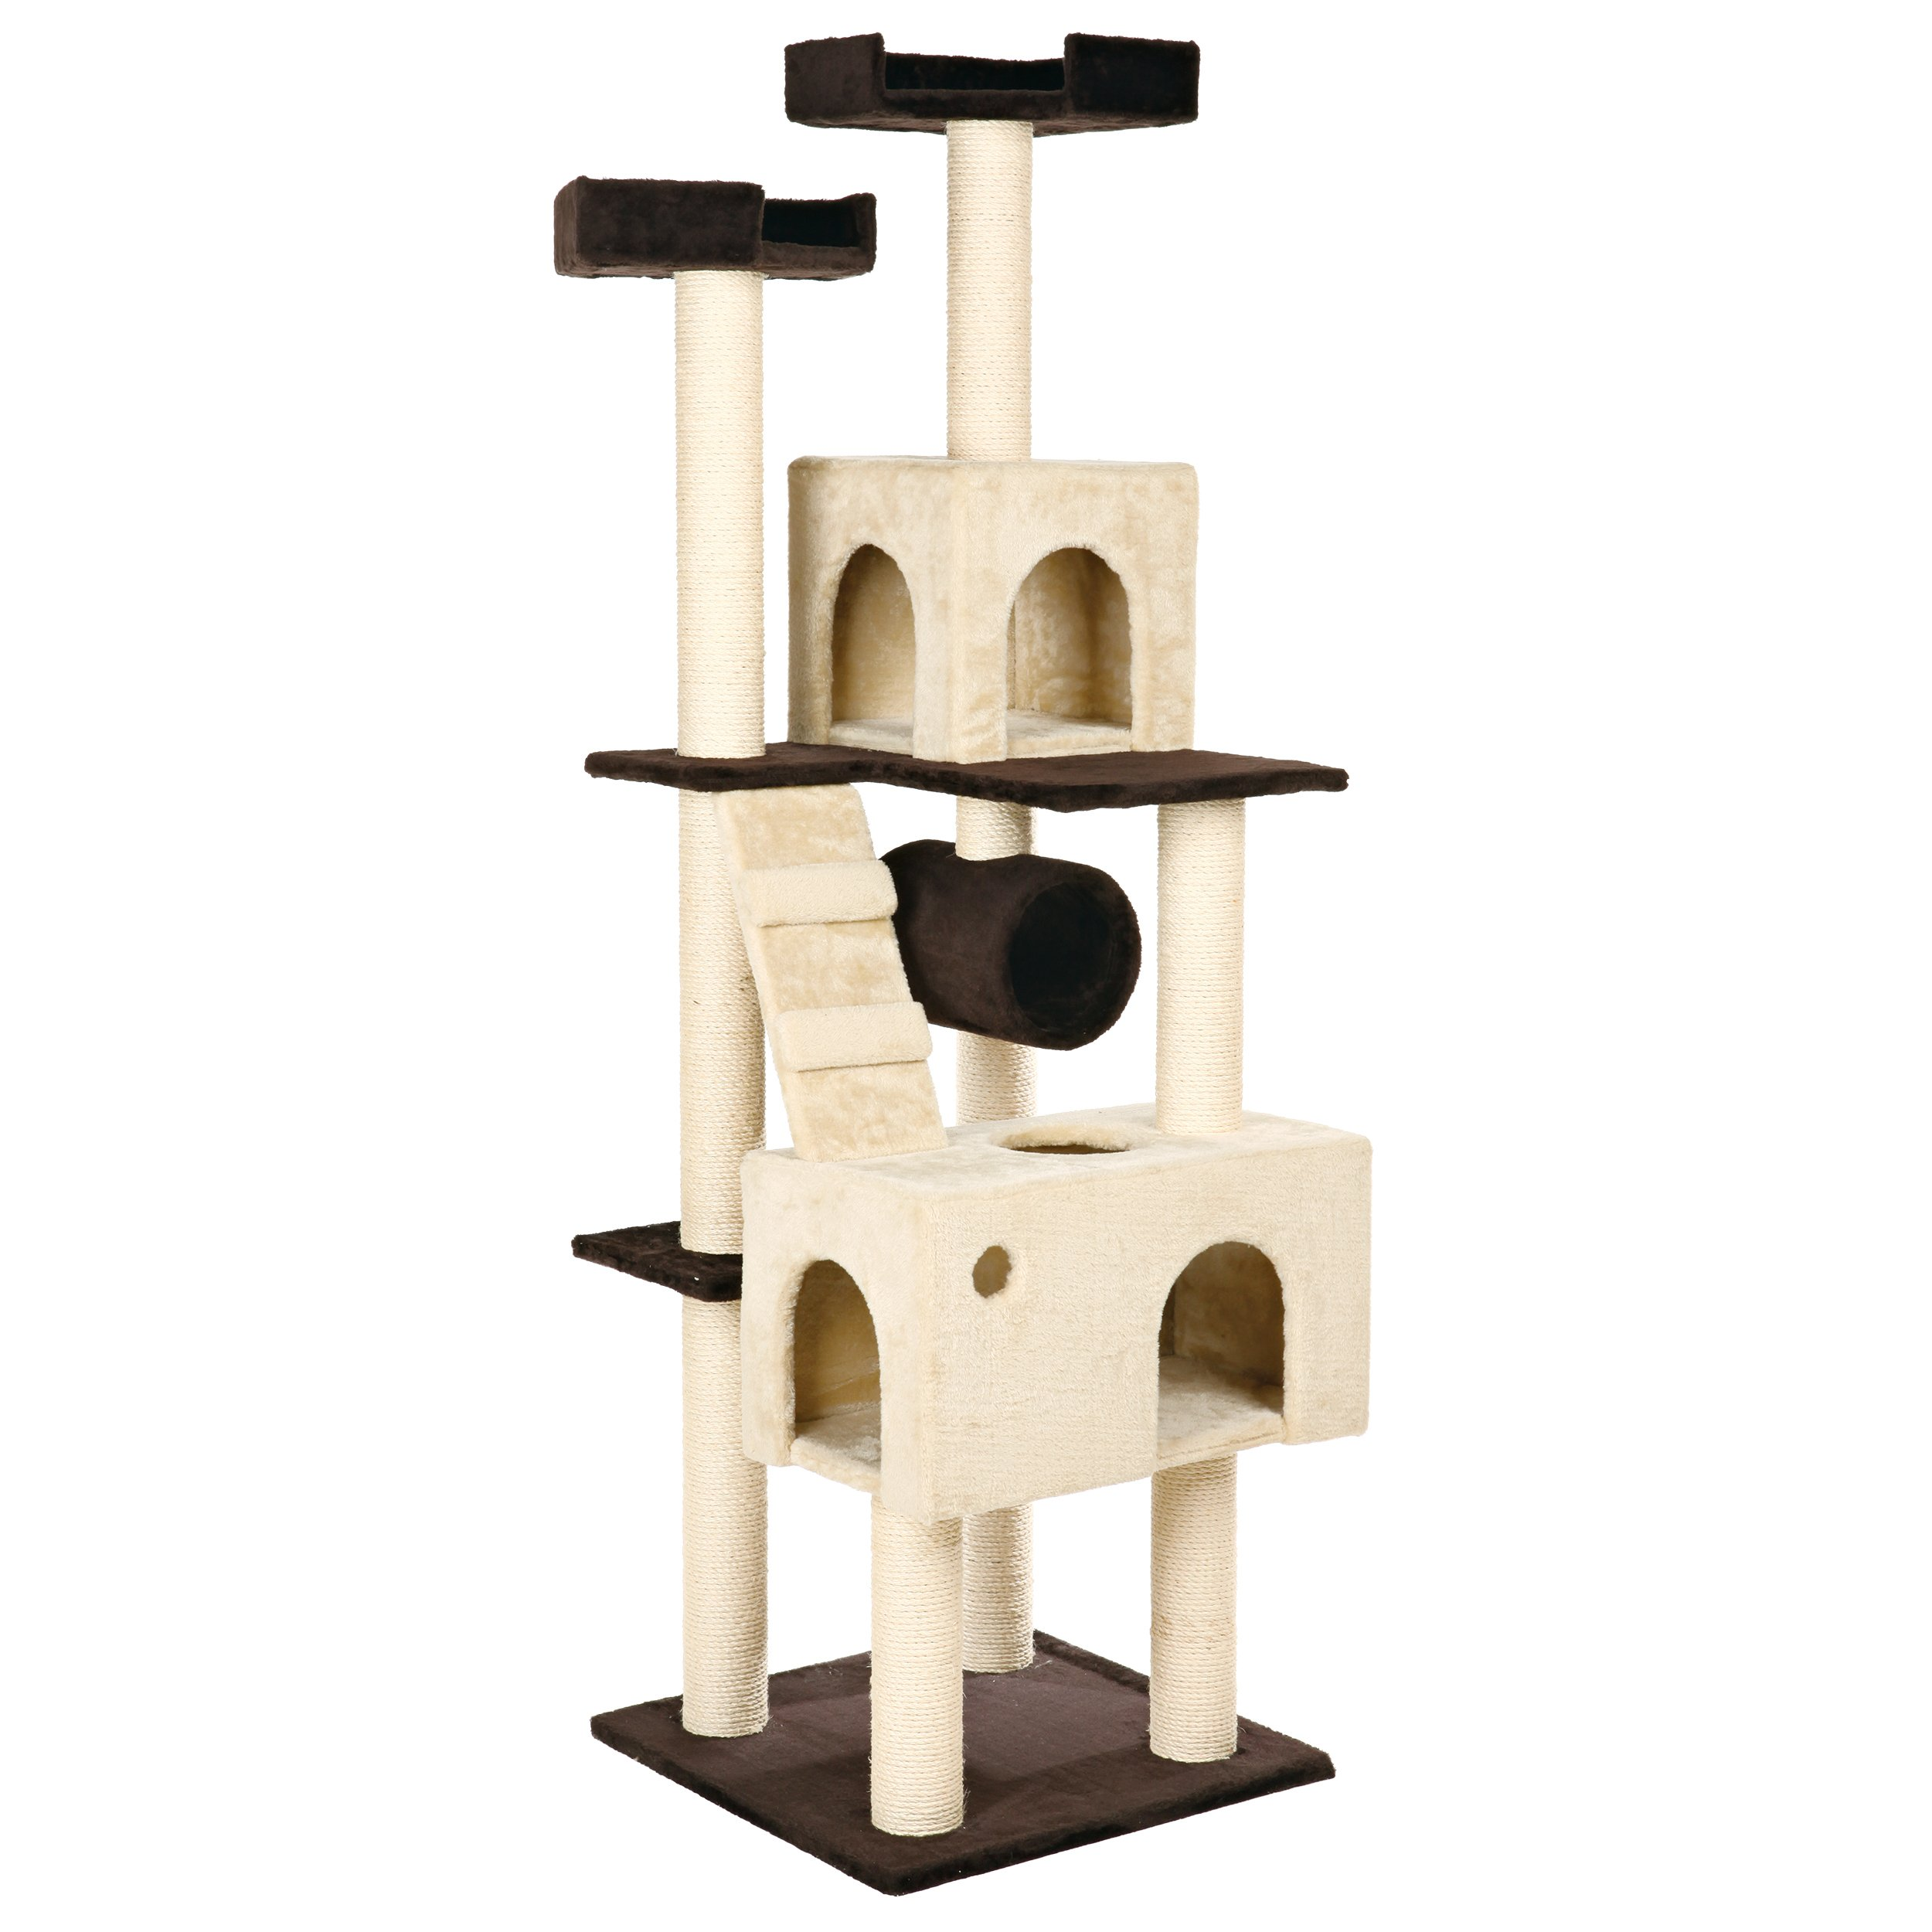 TRIXIE Pet Products Mariela Cat Playground, Beige/Brown